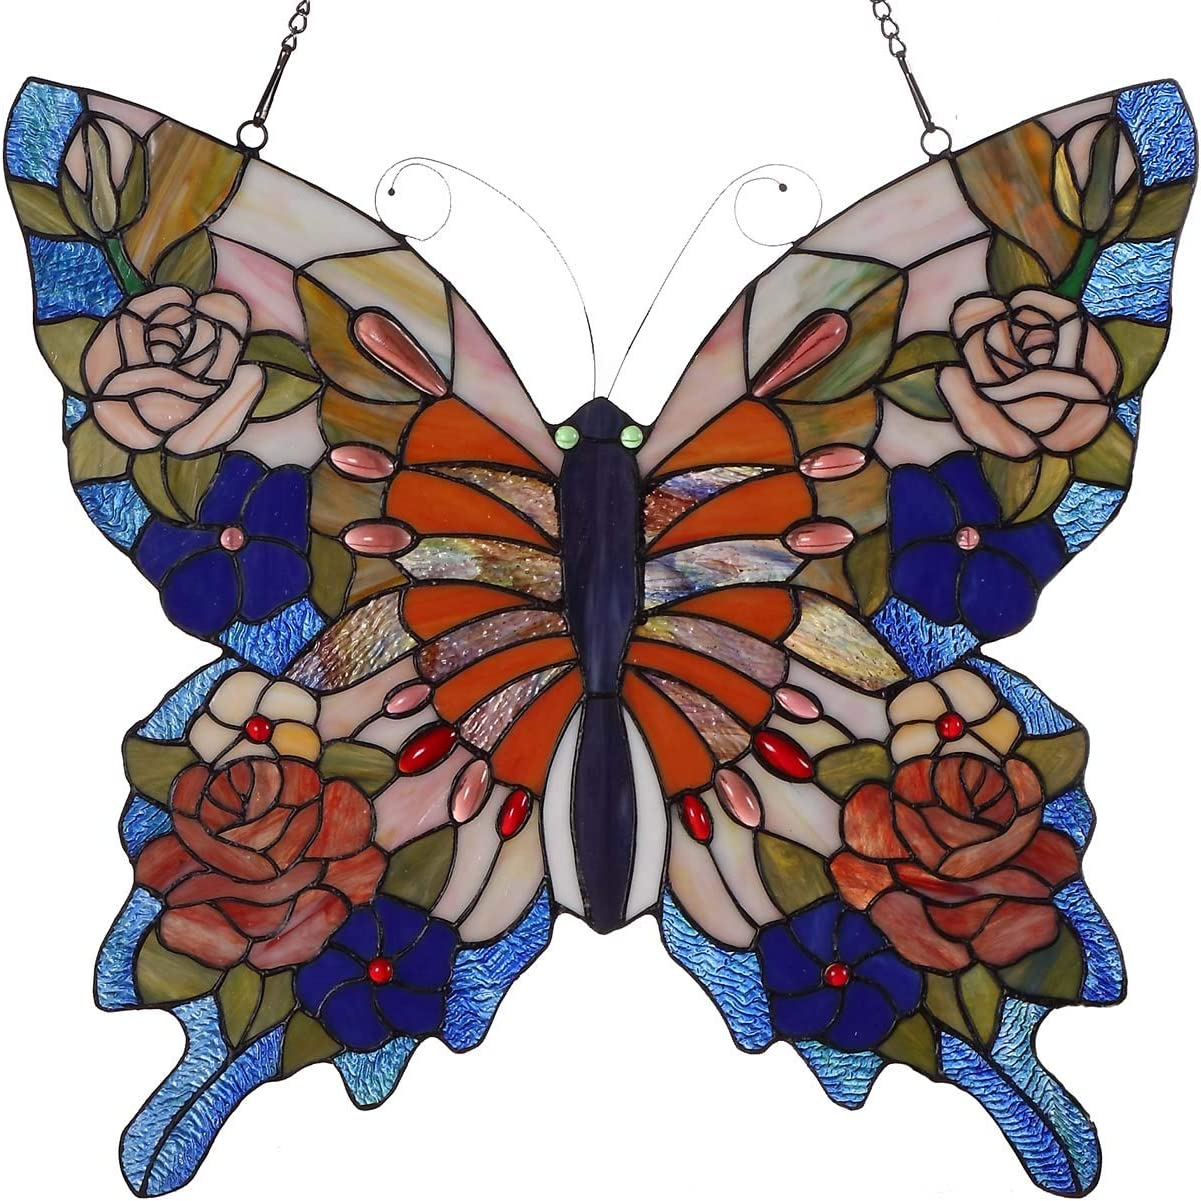 Bieye W10027 Butterfly Tiffany Style Stained Glass Window Panel with Chain, 22 W x 20 H Red